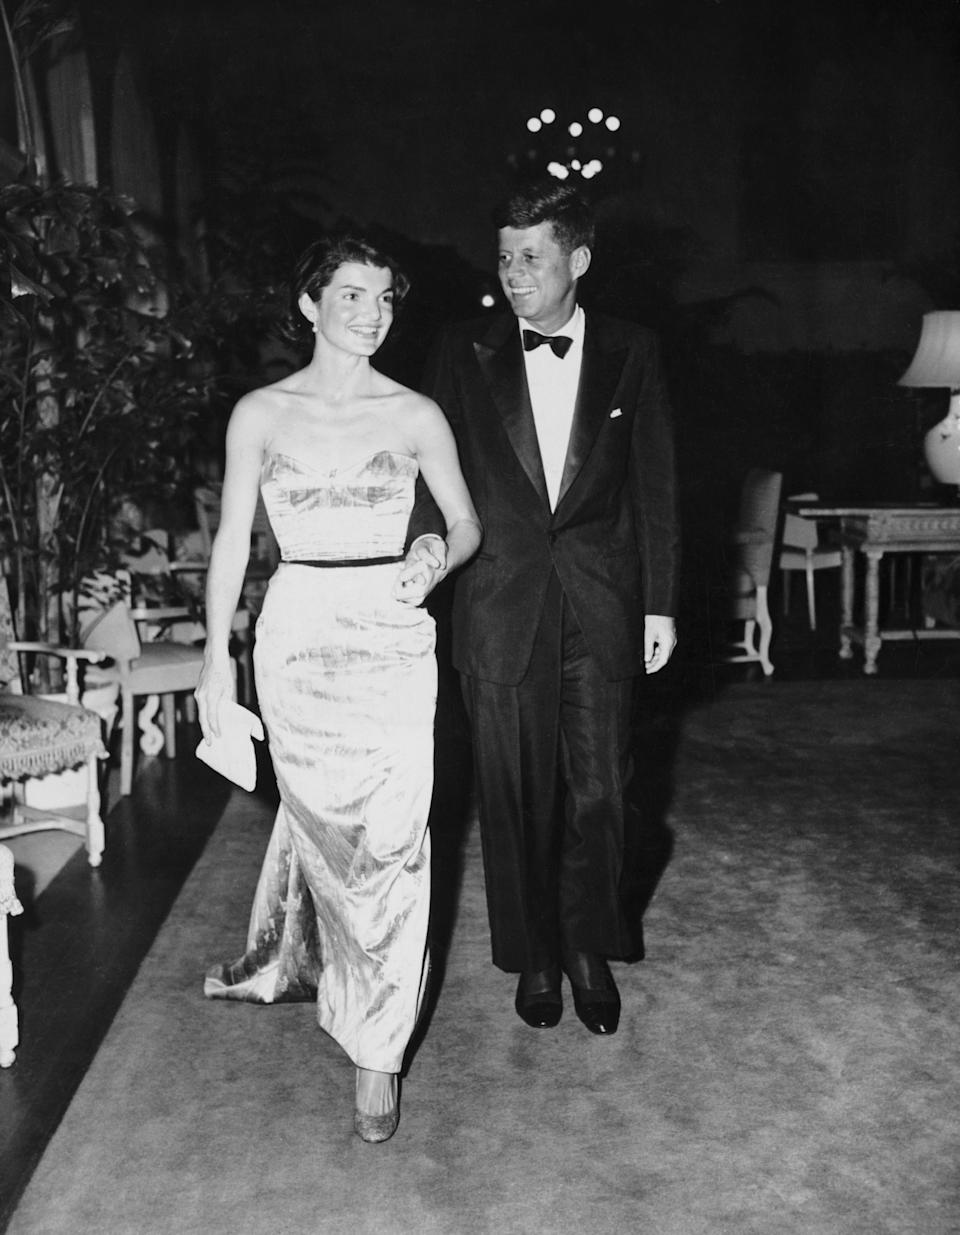 """<p>Former U.S. President John F. Kennedy and Jacqueline Kennedy Onassis captivated the world with their good looks and charm. The """"Camelot"""" era of the White House was filled with hope and the promise of change but ultimately ended in tragedy for the picture perfect Kennedy family. <em>(Image via Getty Images)</em></p>"""